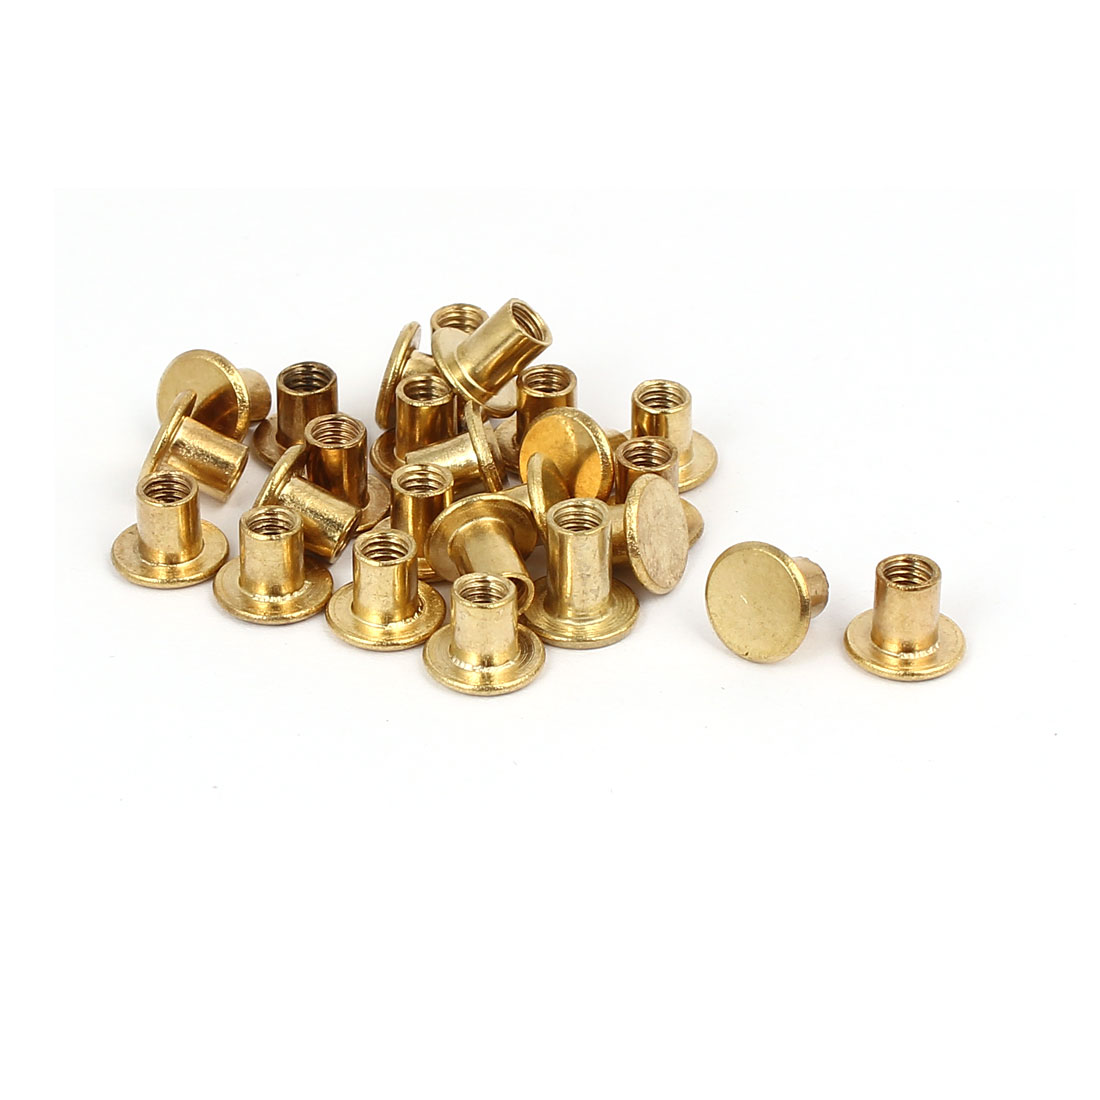 Photo Album Metal Brass Plated Binding Screw Post Barrel Nut 5mmx6mm 25pcs